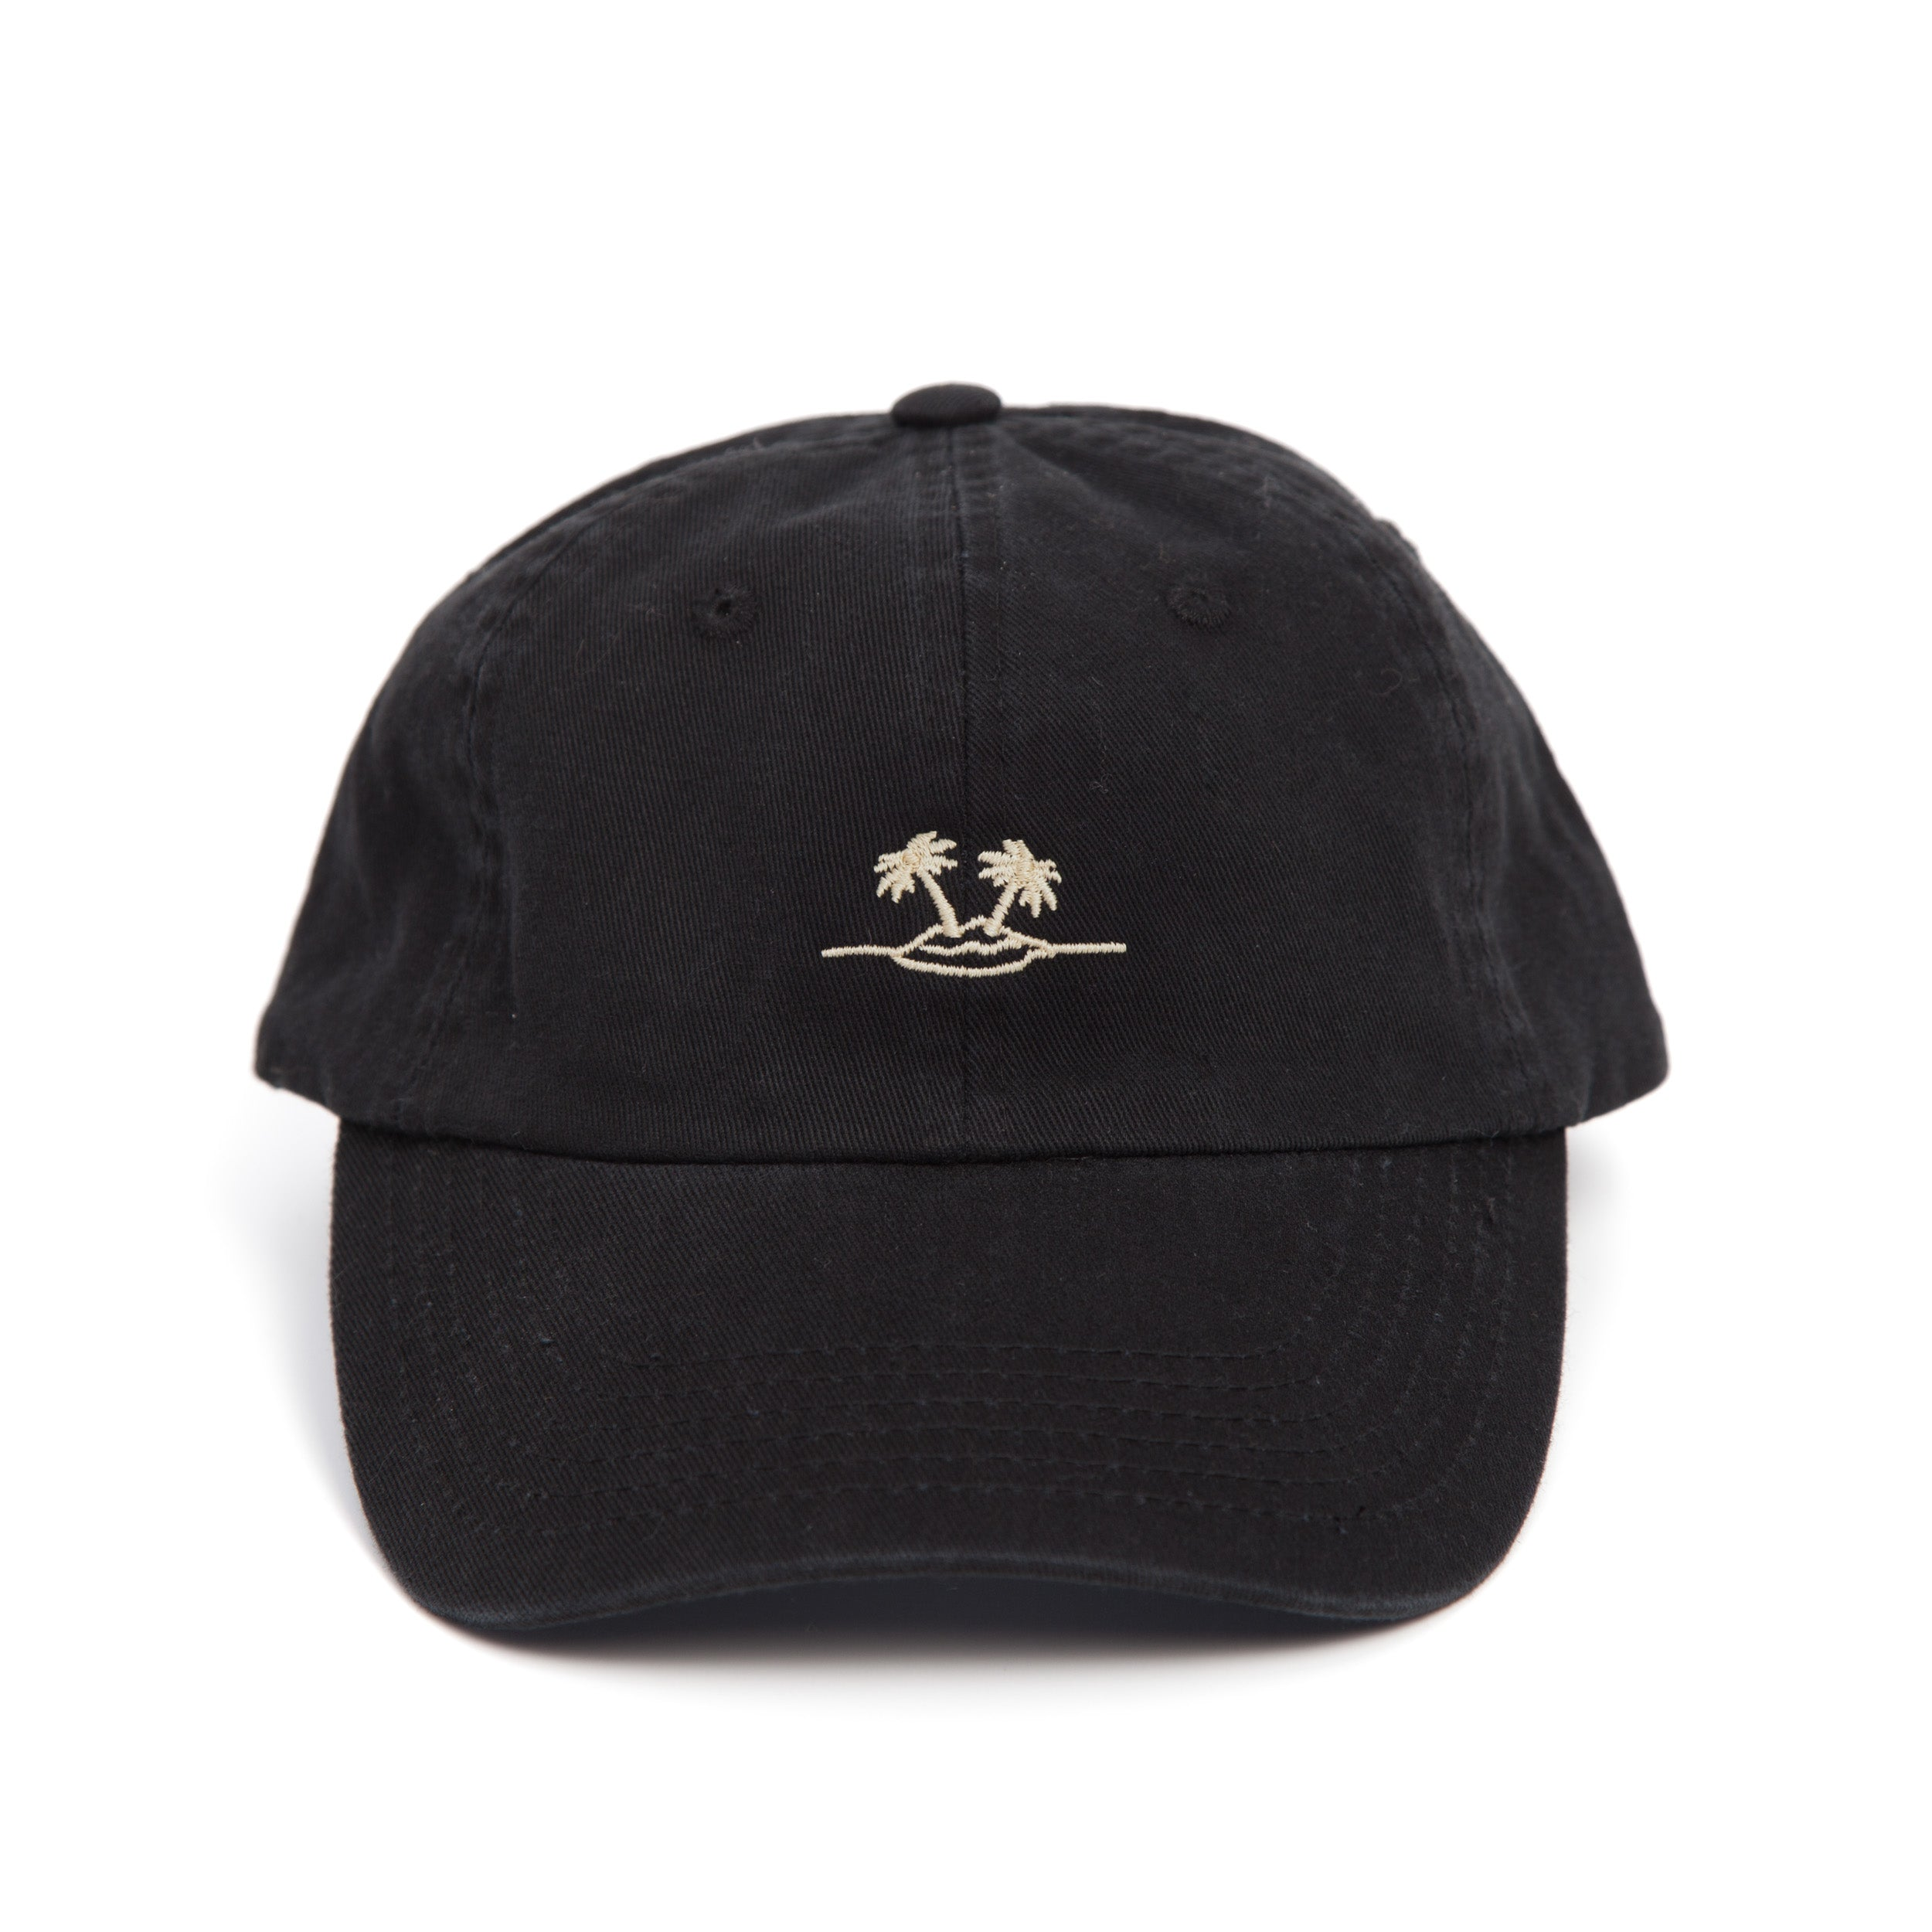 everythings good clothing co black dad cap palm